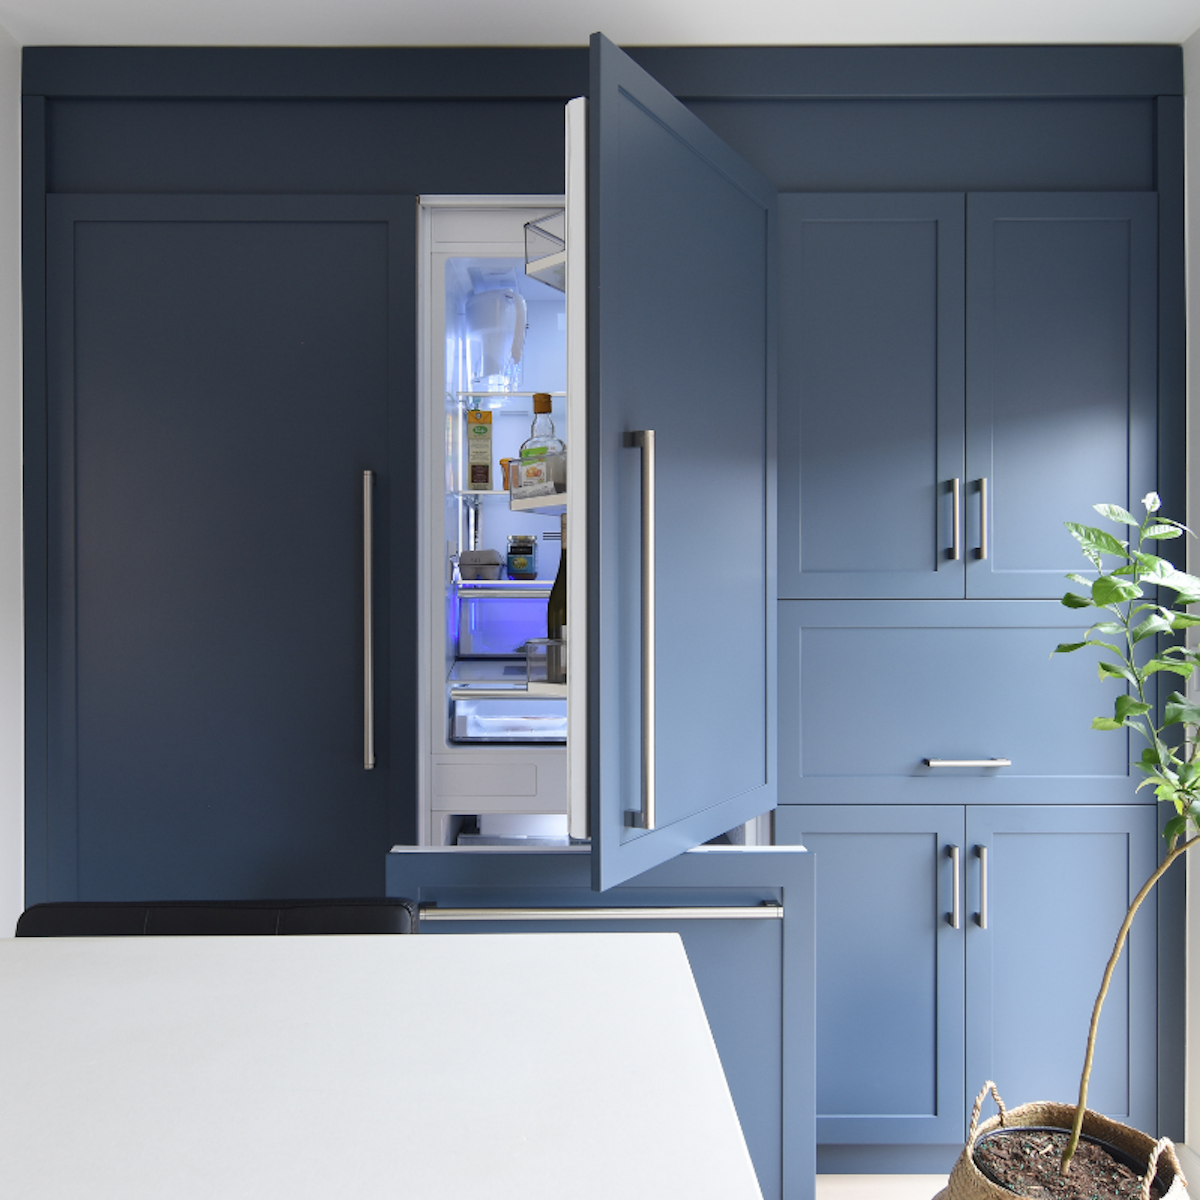 blue-kitchen-panelled-fridge-3